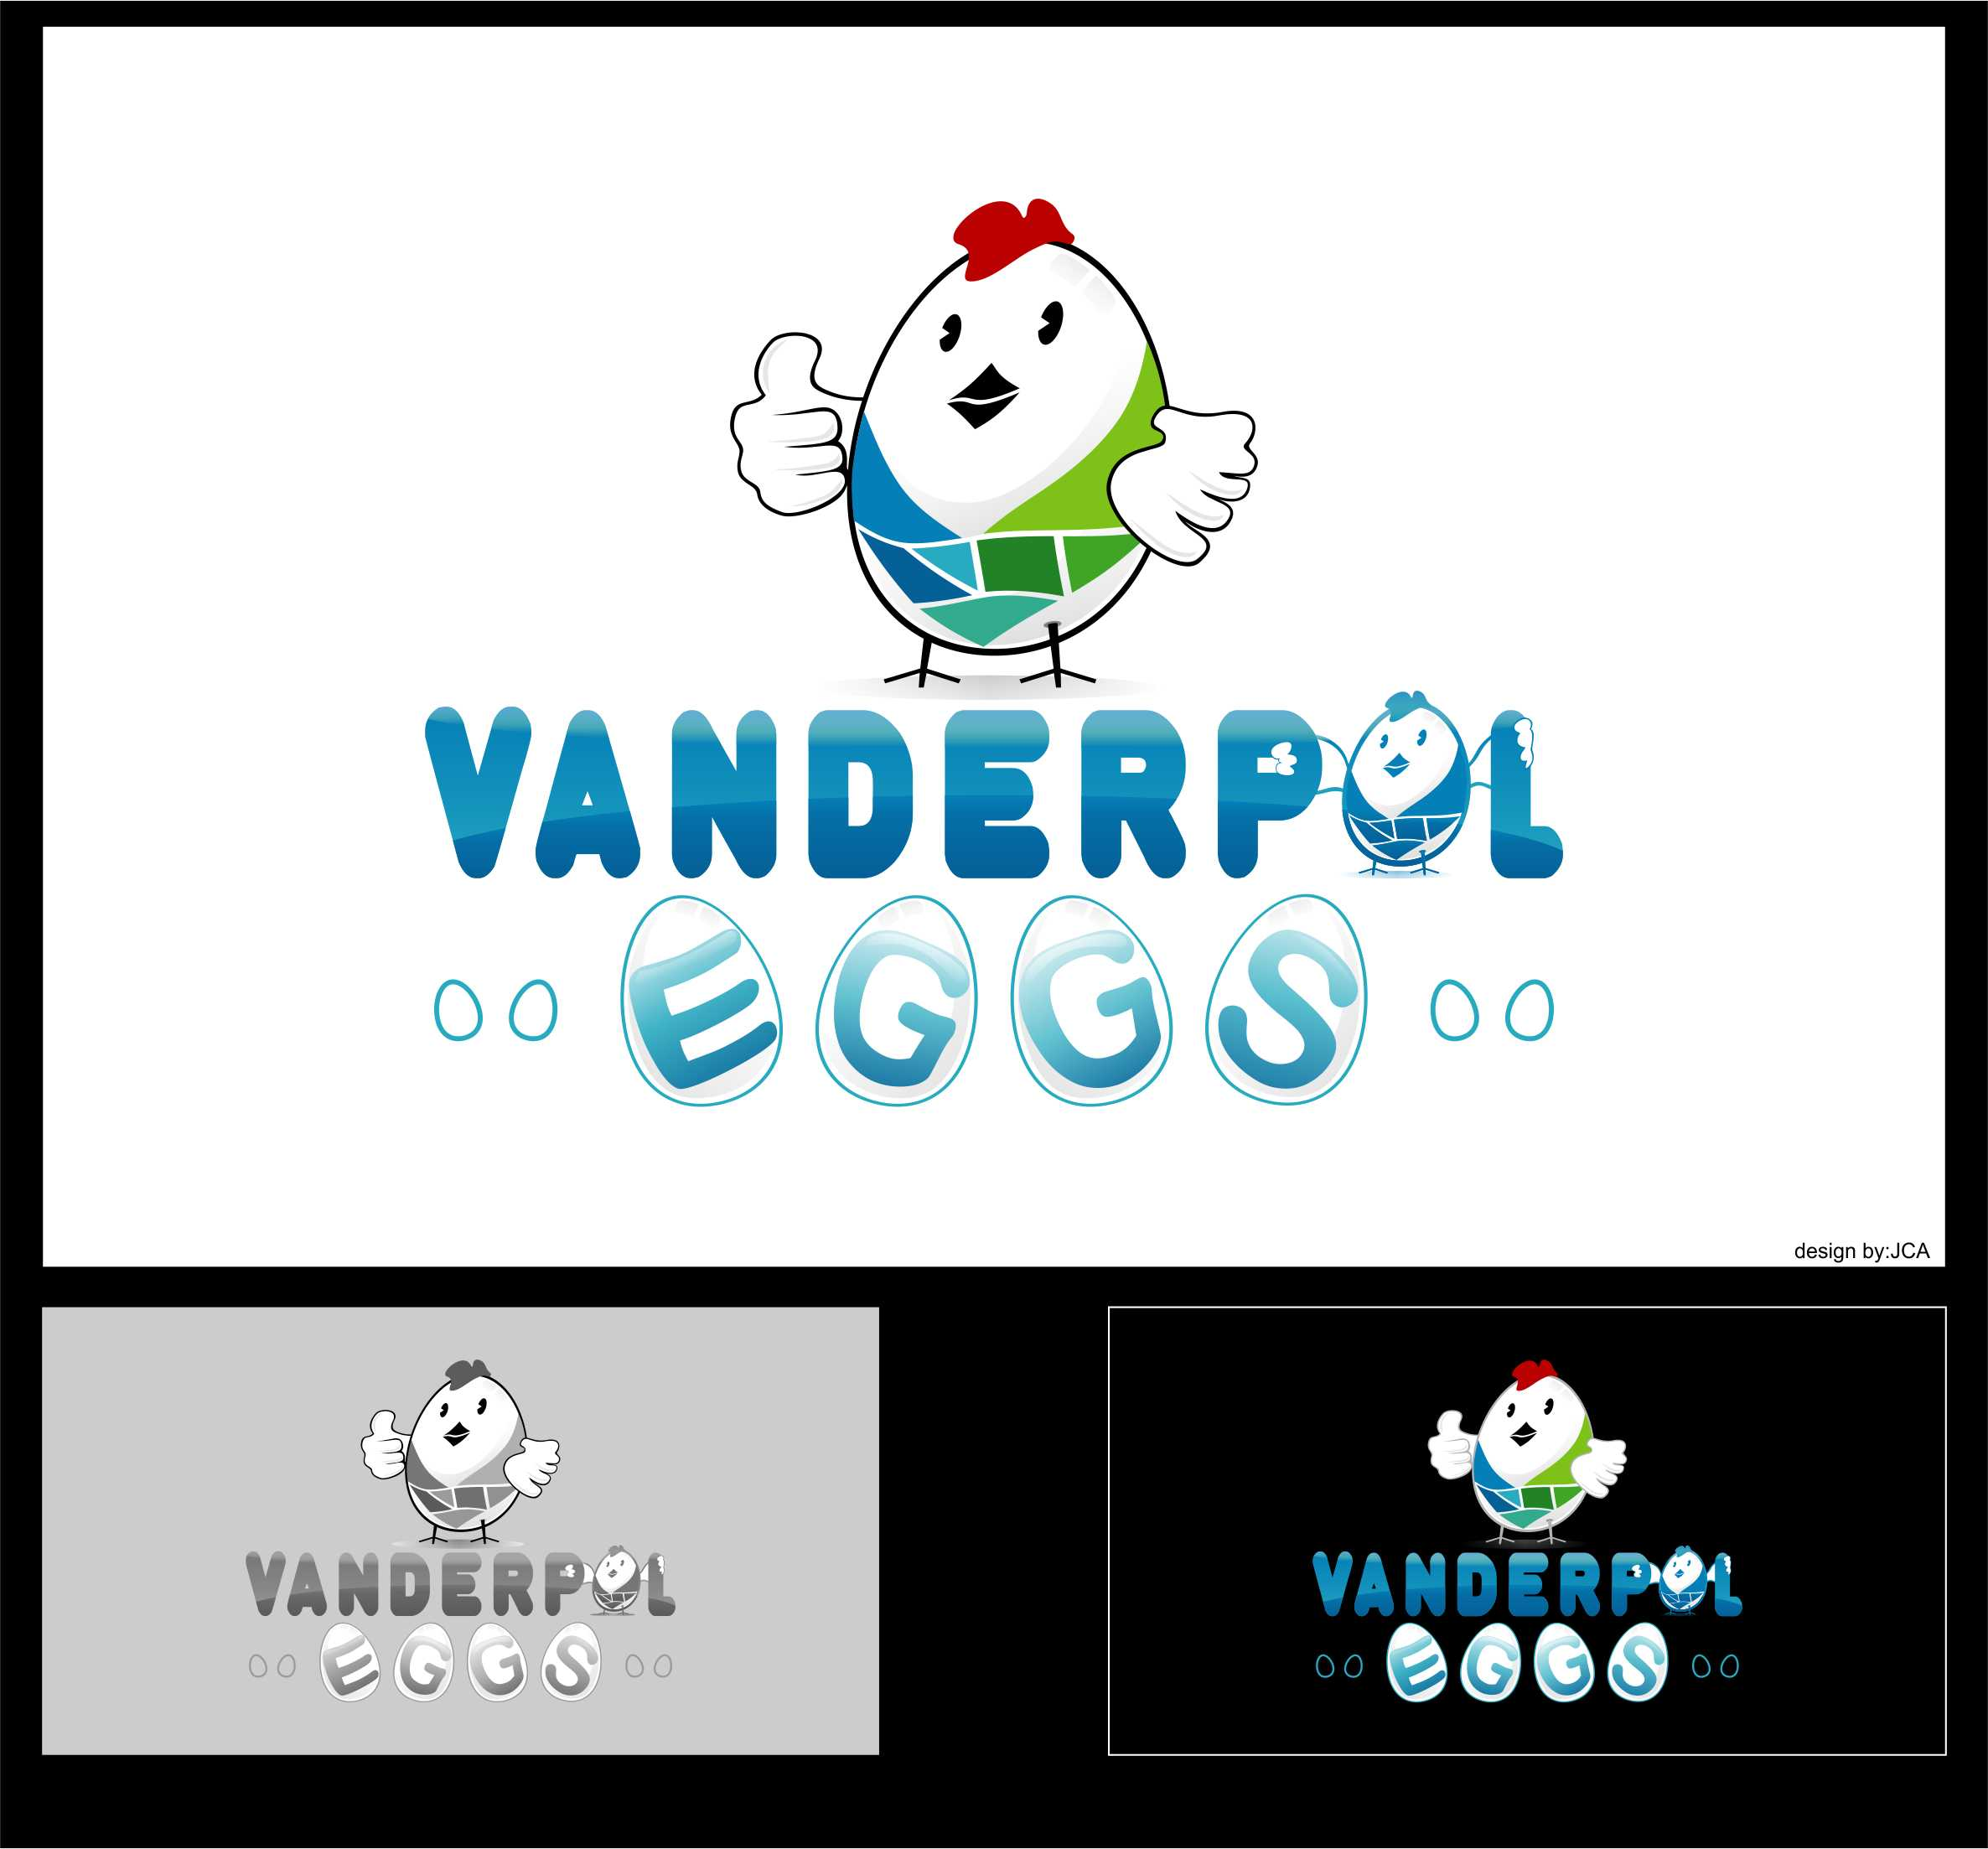 Logo Design by joca - Entry No. 62 in the Logo Design Contest Creative Logo Design for Vanderpol Food Group.